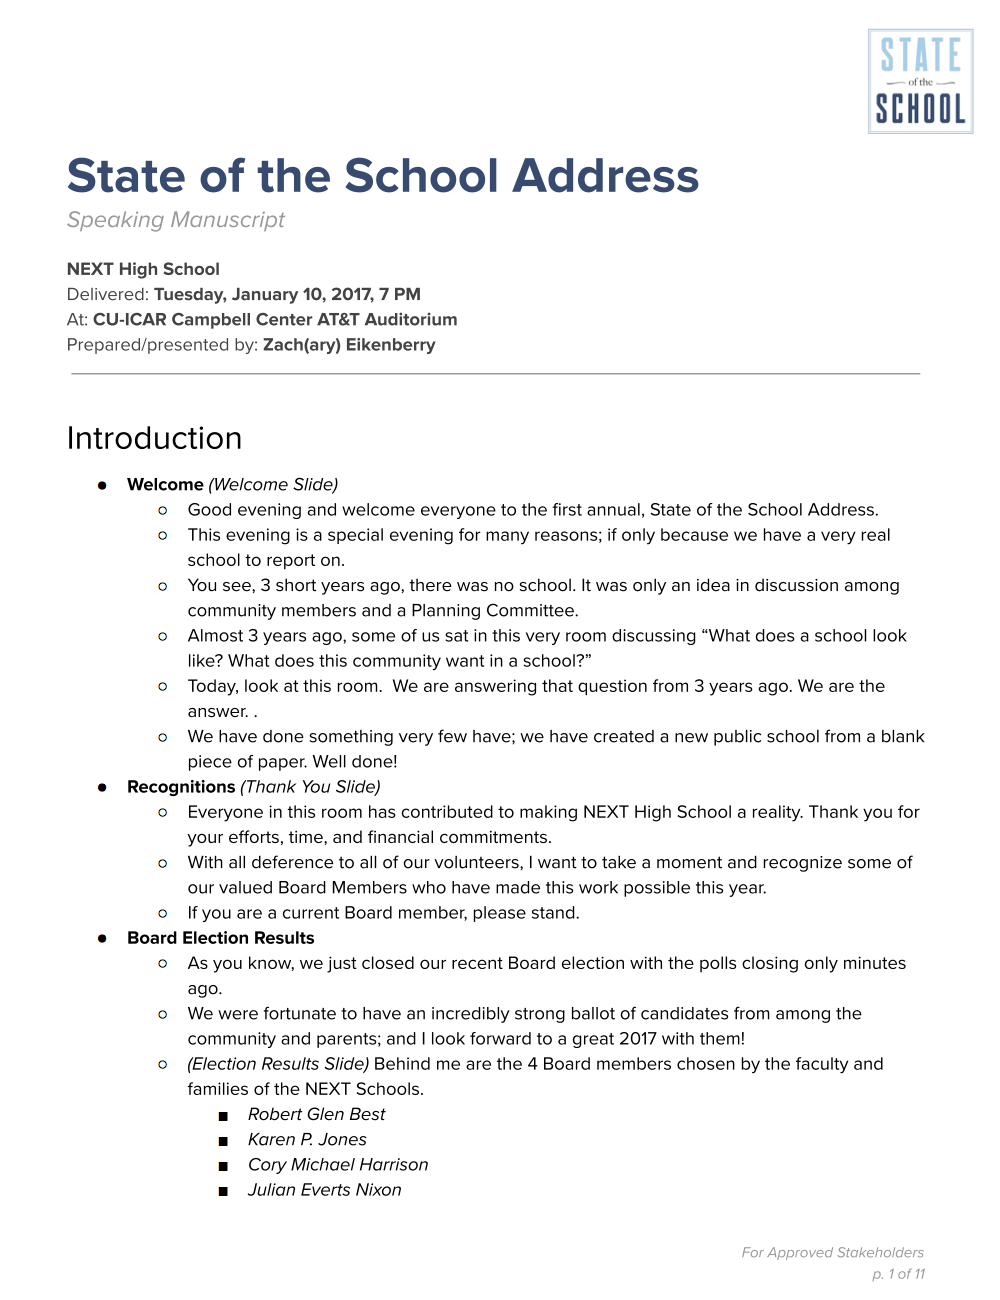 Along with the video recording, check out the CEO's speaking manuscript of the State of the School Address (click image above).